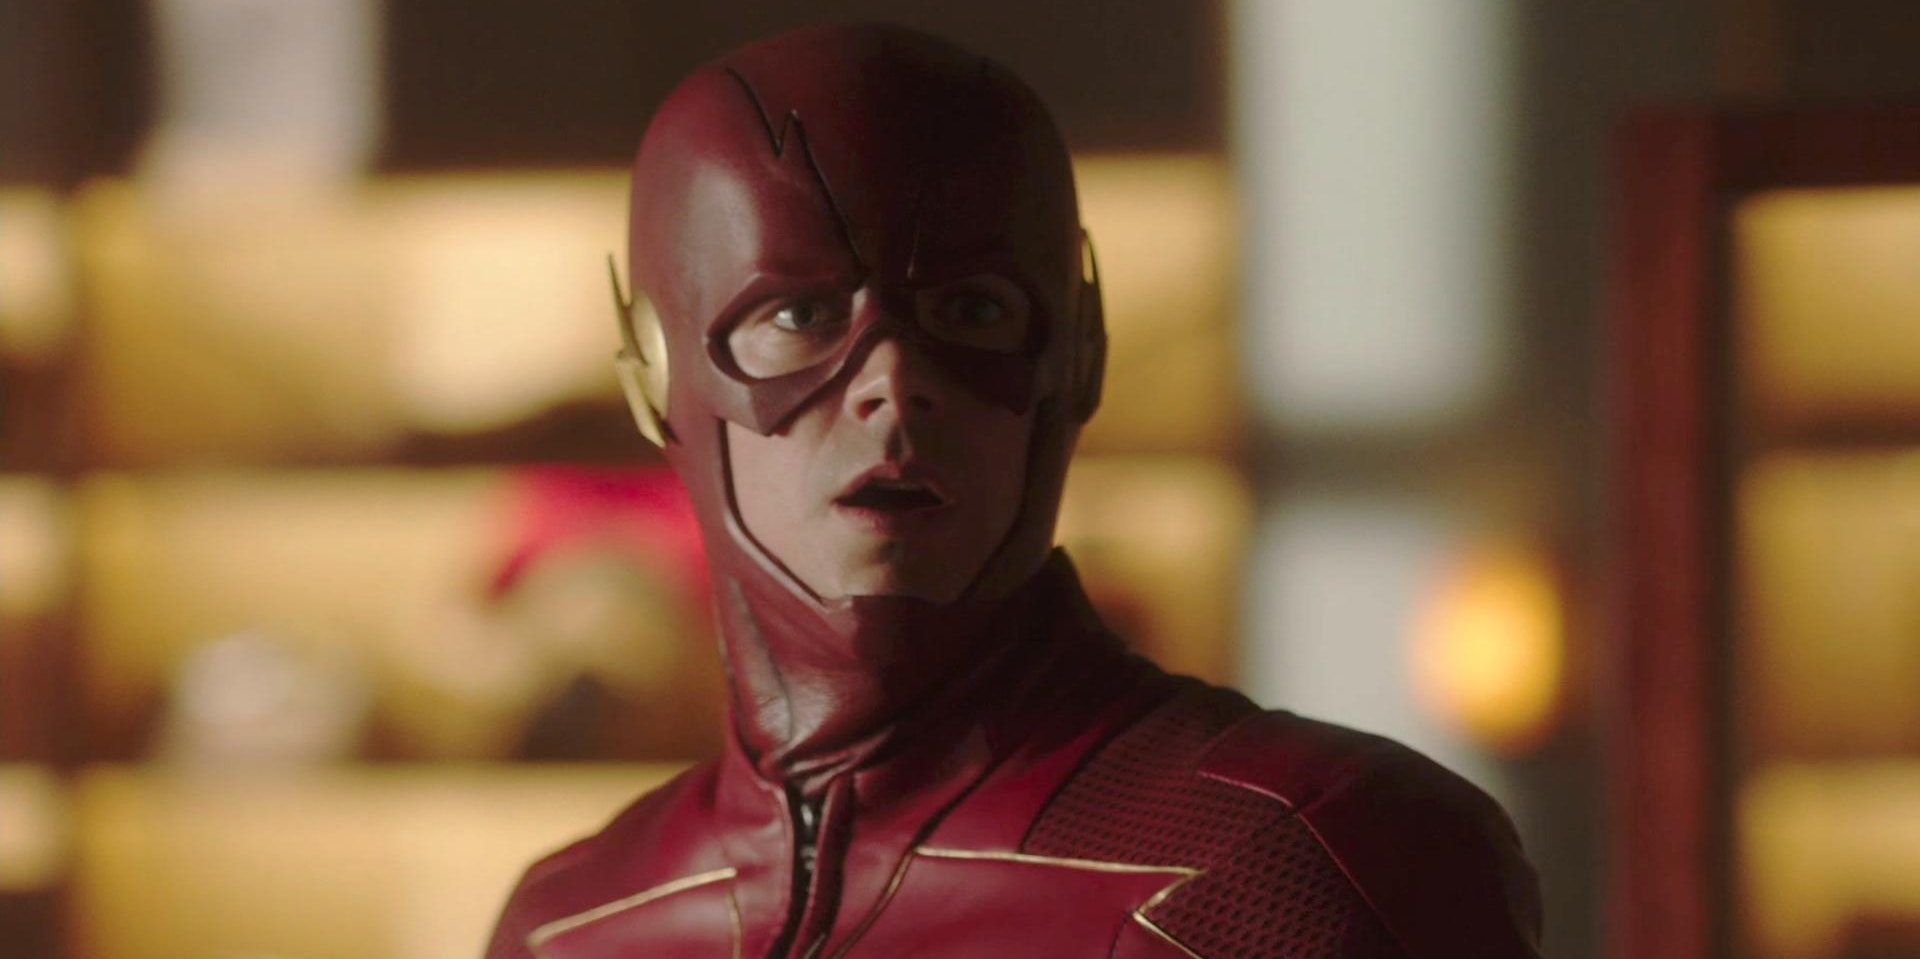 Upcoming 'Flash' Episode Title Might Spoil a Badass New Villain